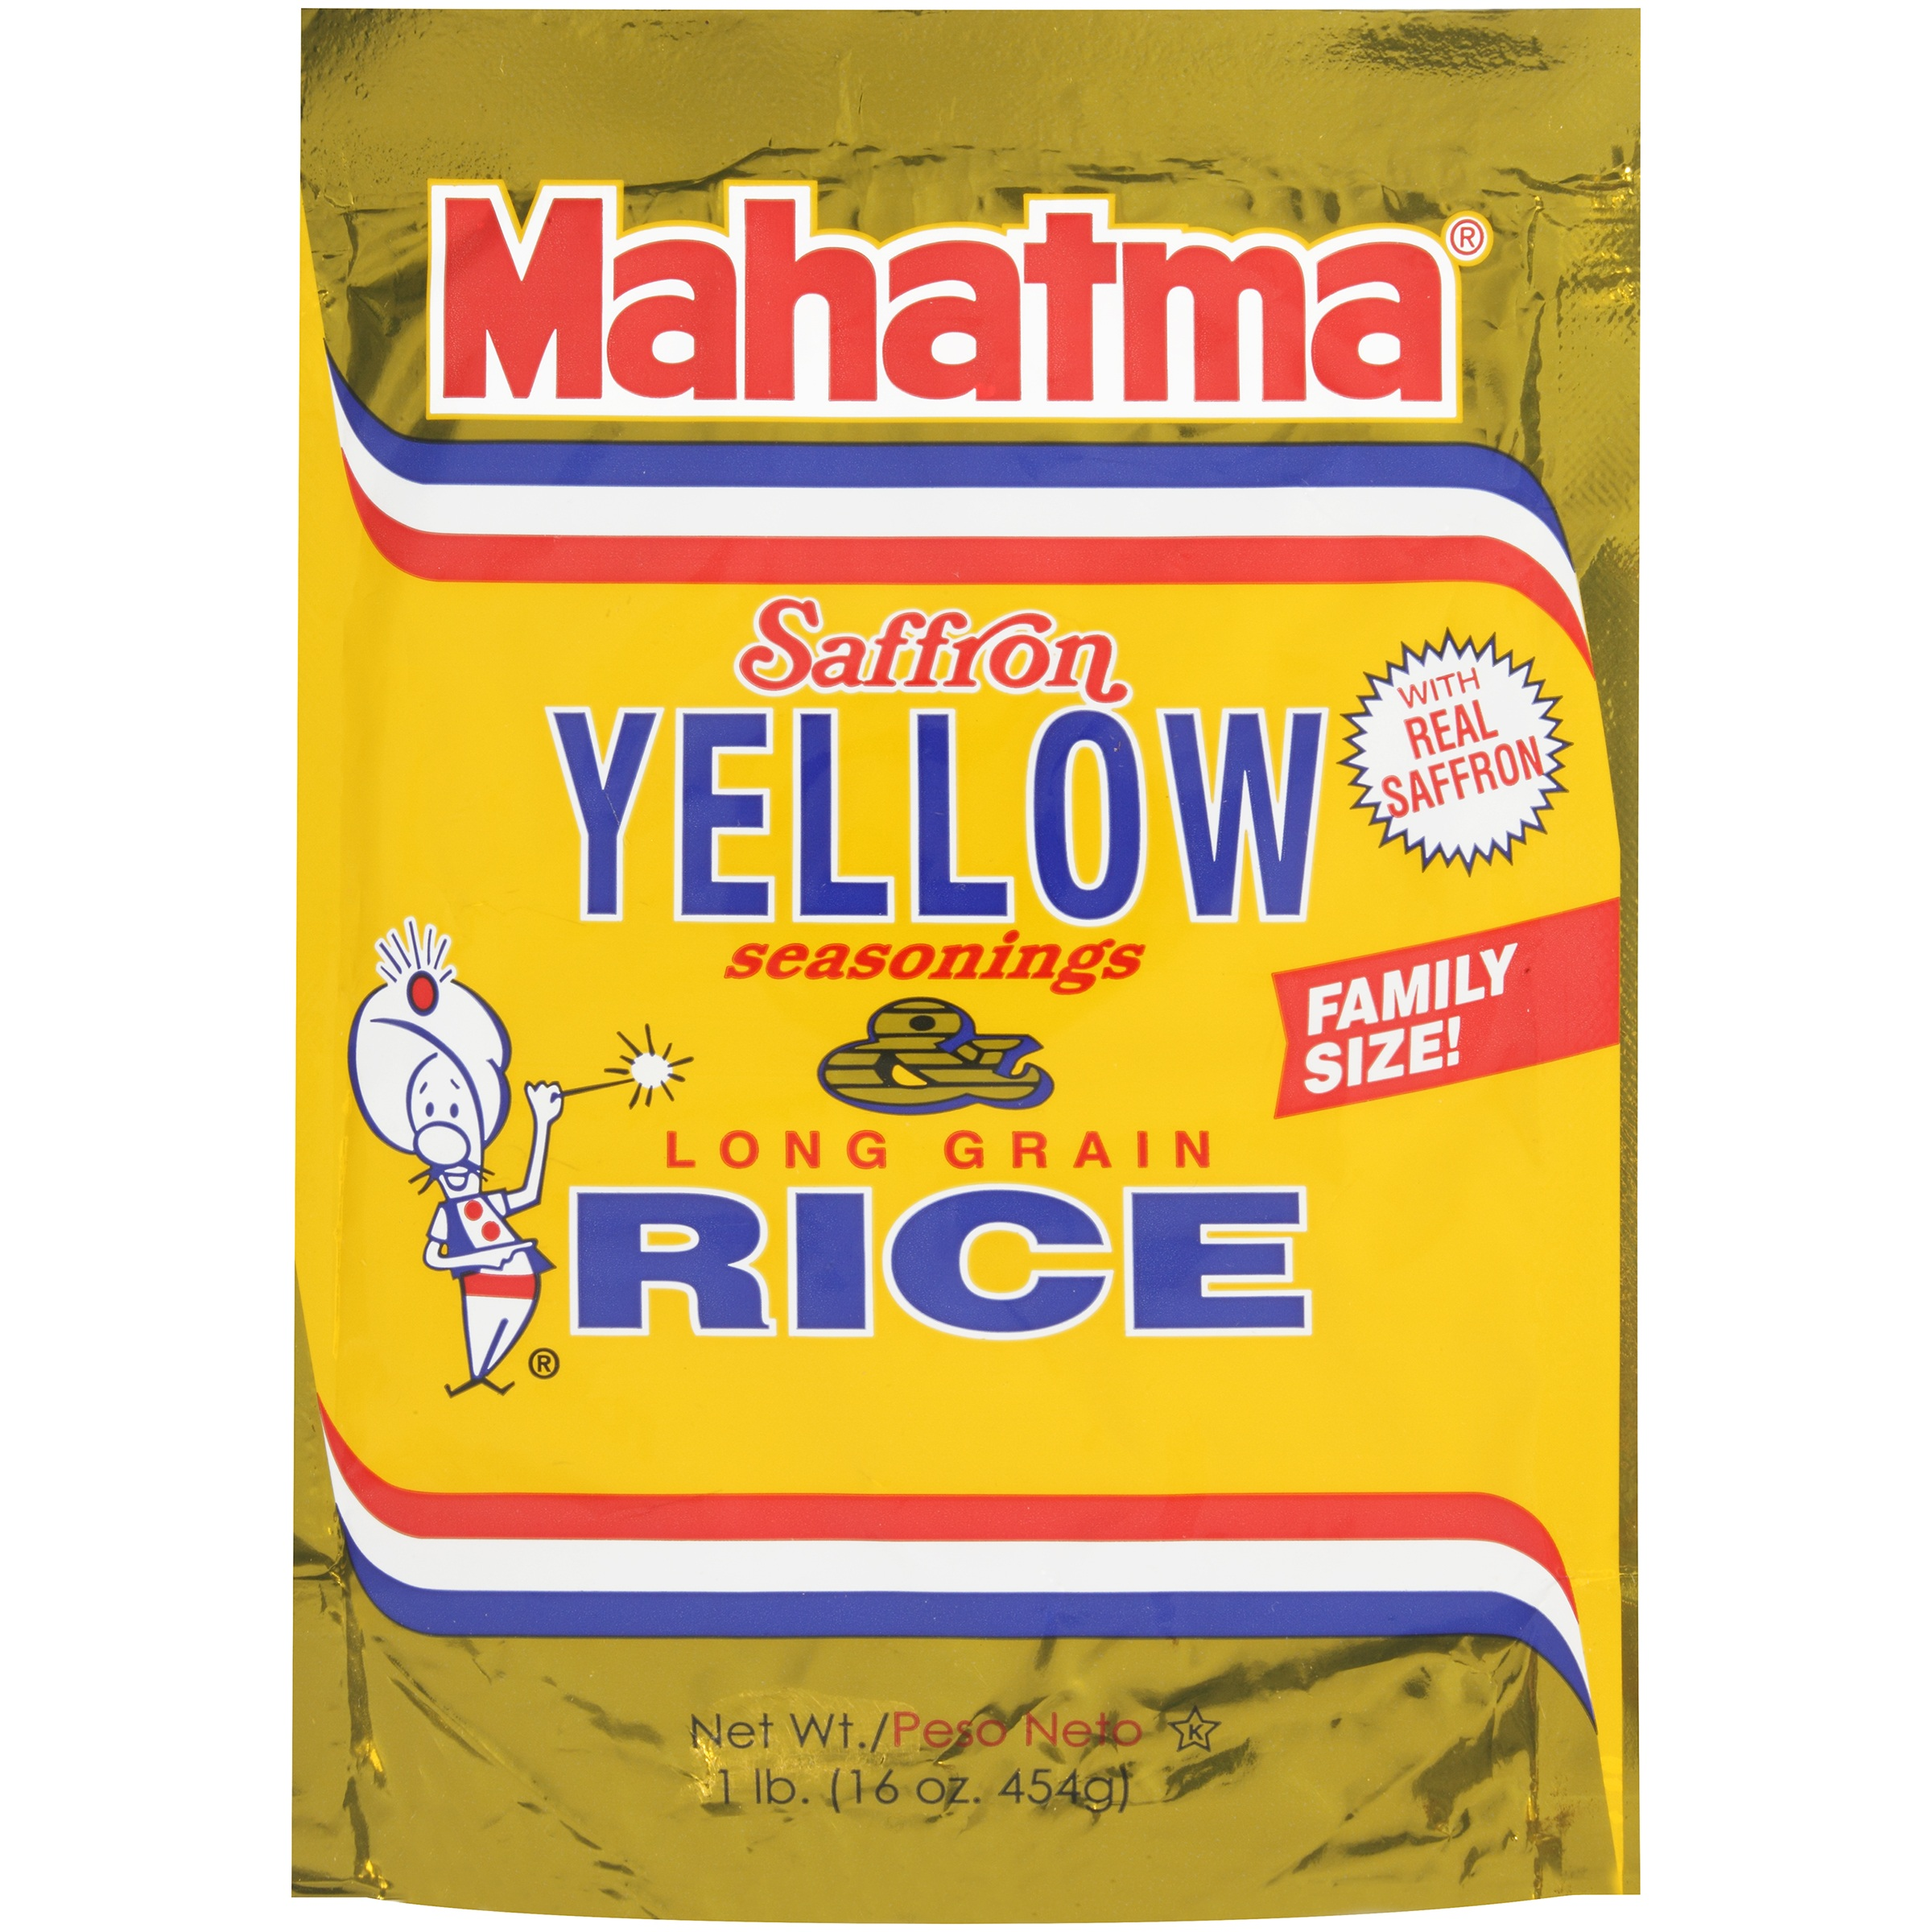 Mahatma Saffron Yellow Seasonings & Long Grain Rice 16 oz Pouch